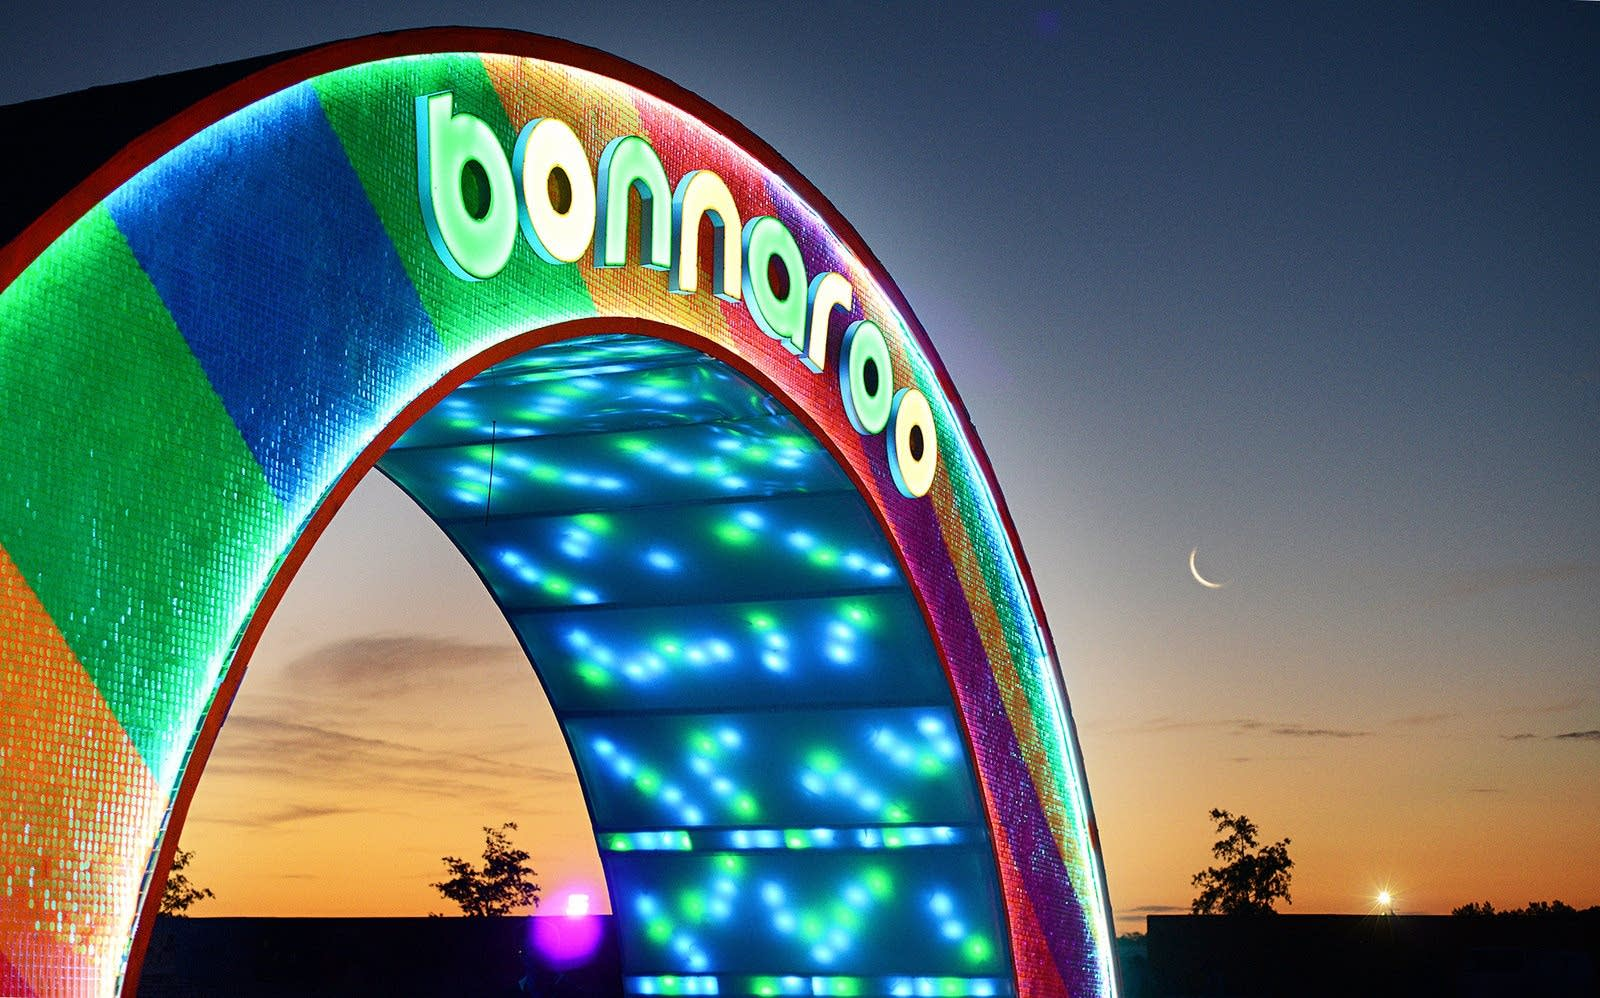 Bonnaroo at night